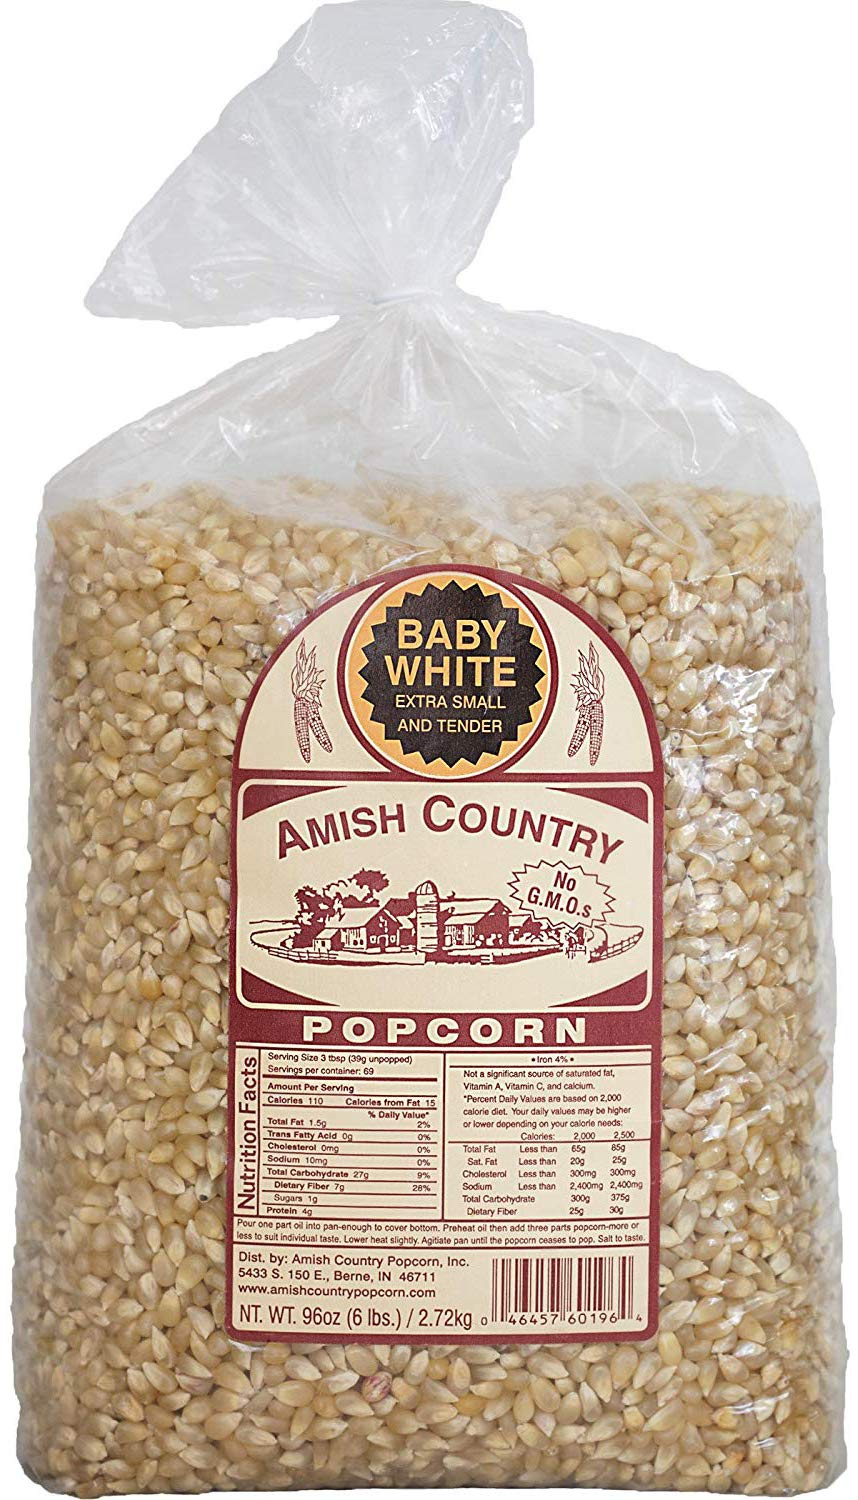 Amish Country Popcorn - Baby White (6 Pound Bag) - Small & Tender Popcorn - Old Fashioned And Delicious with Recipe Guide by Amish Country Popcorn (Image #1)